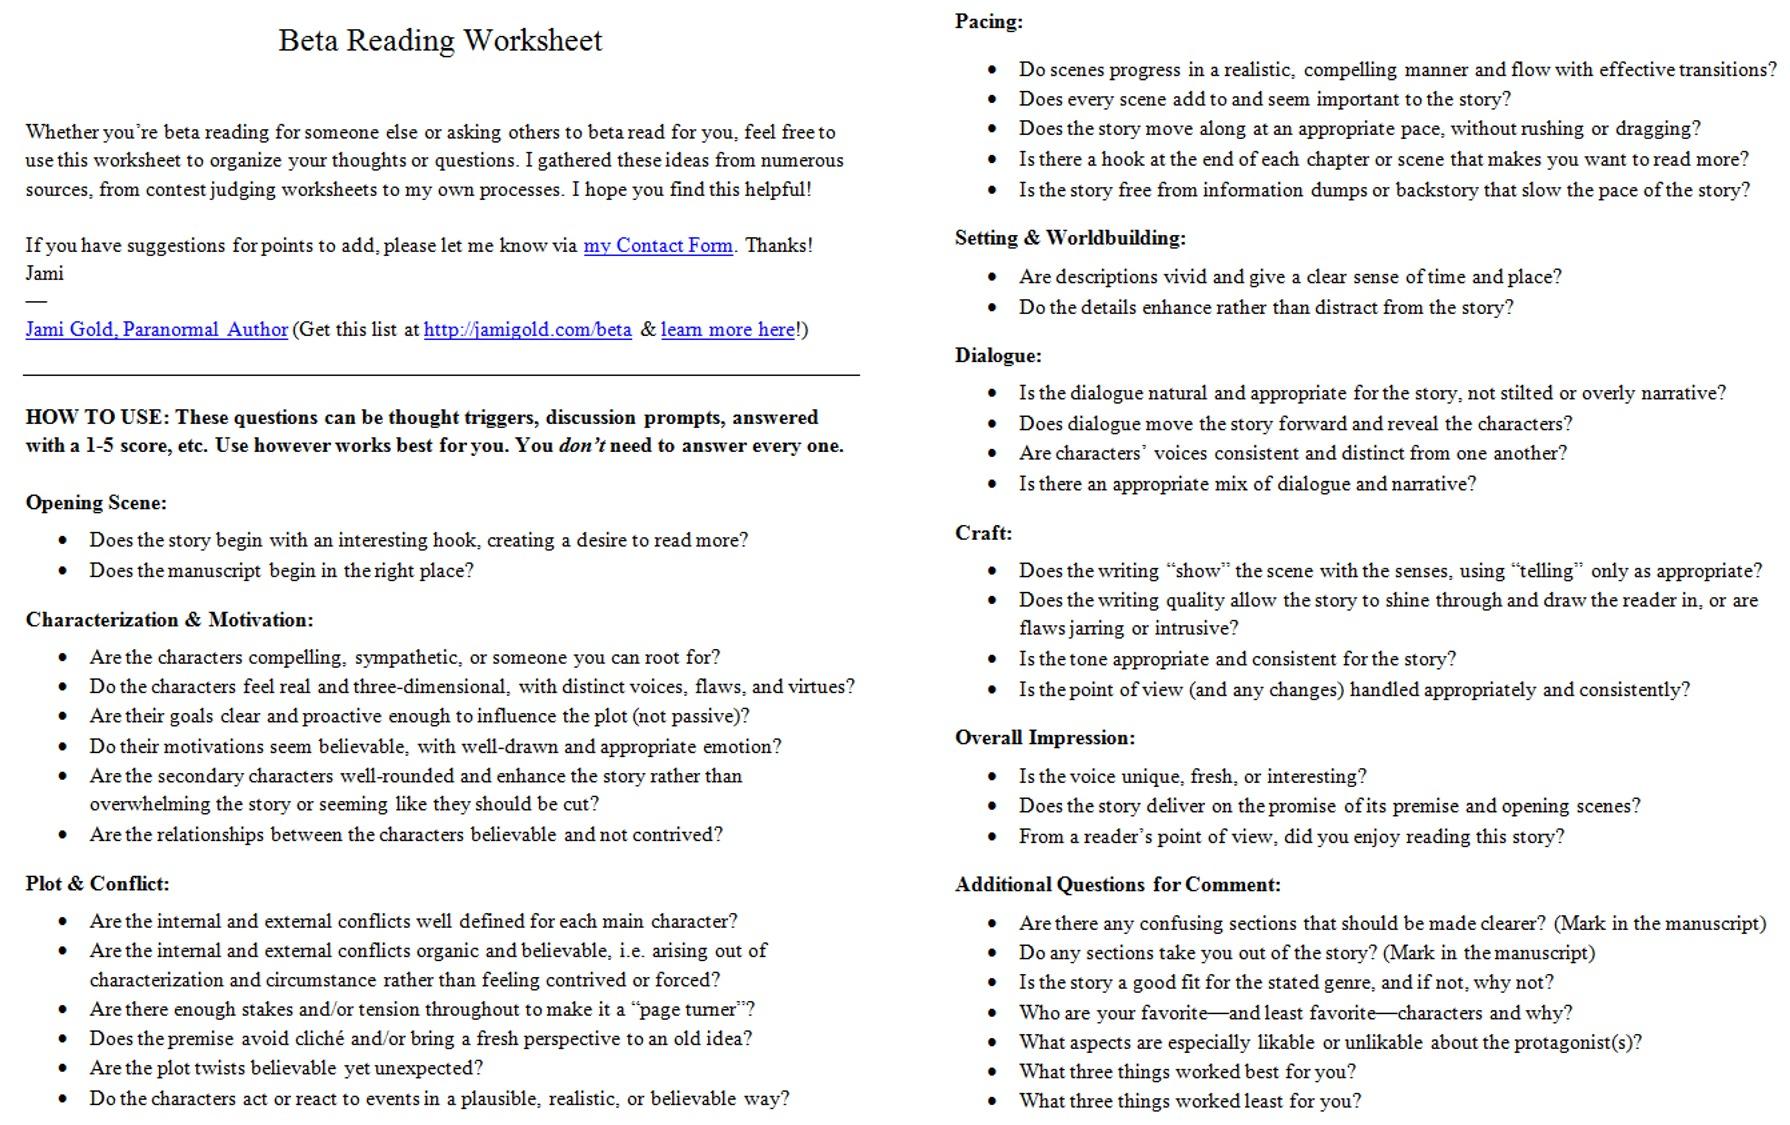 Proatmealus  Unique Worksheets For Writers  Jami Gold Paranormal Author With Fascinating Screen Shot Of The Twopage Beta Reading Worksheet With Comely Worksheets About Matter Also Grade  Math Algebra Worksheets In Addition Worksheets On Subjects And Predicates And Number Patterns Worksheets Grade  As Well As Jack And Jill Worksheets Additionally Grade Four English Worksheets From Jamigoldcom With Proatmealus  Fascinating Worksheets For Writers  Jami Gold Paranormal Author With Comely Screen Shot Of The Twopage Beta Reading Worksheet And Unique Worksheets About Matter Also Grade  Math Algebra Worksheets In Addition Worksheets On Subjects And Predicates From Jamigoldcom